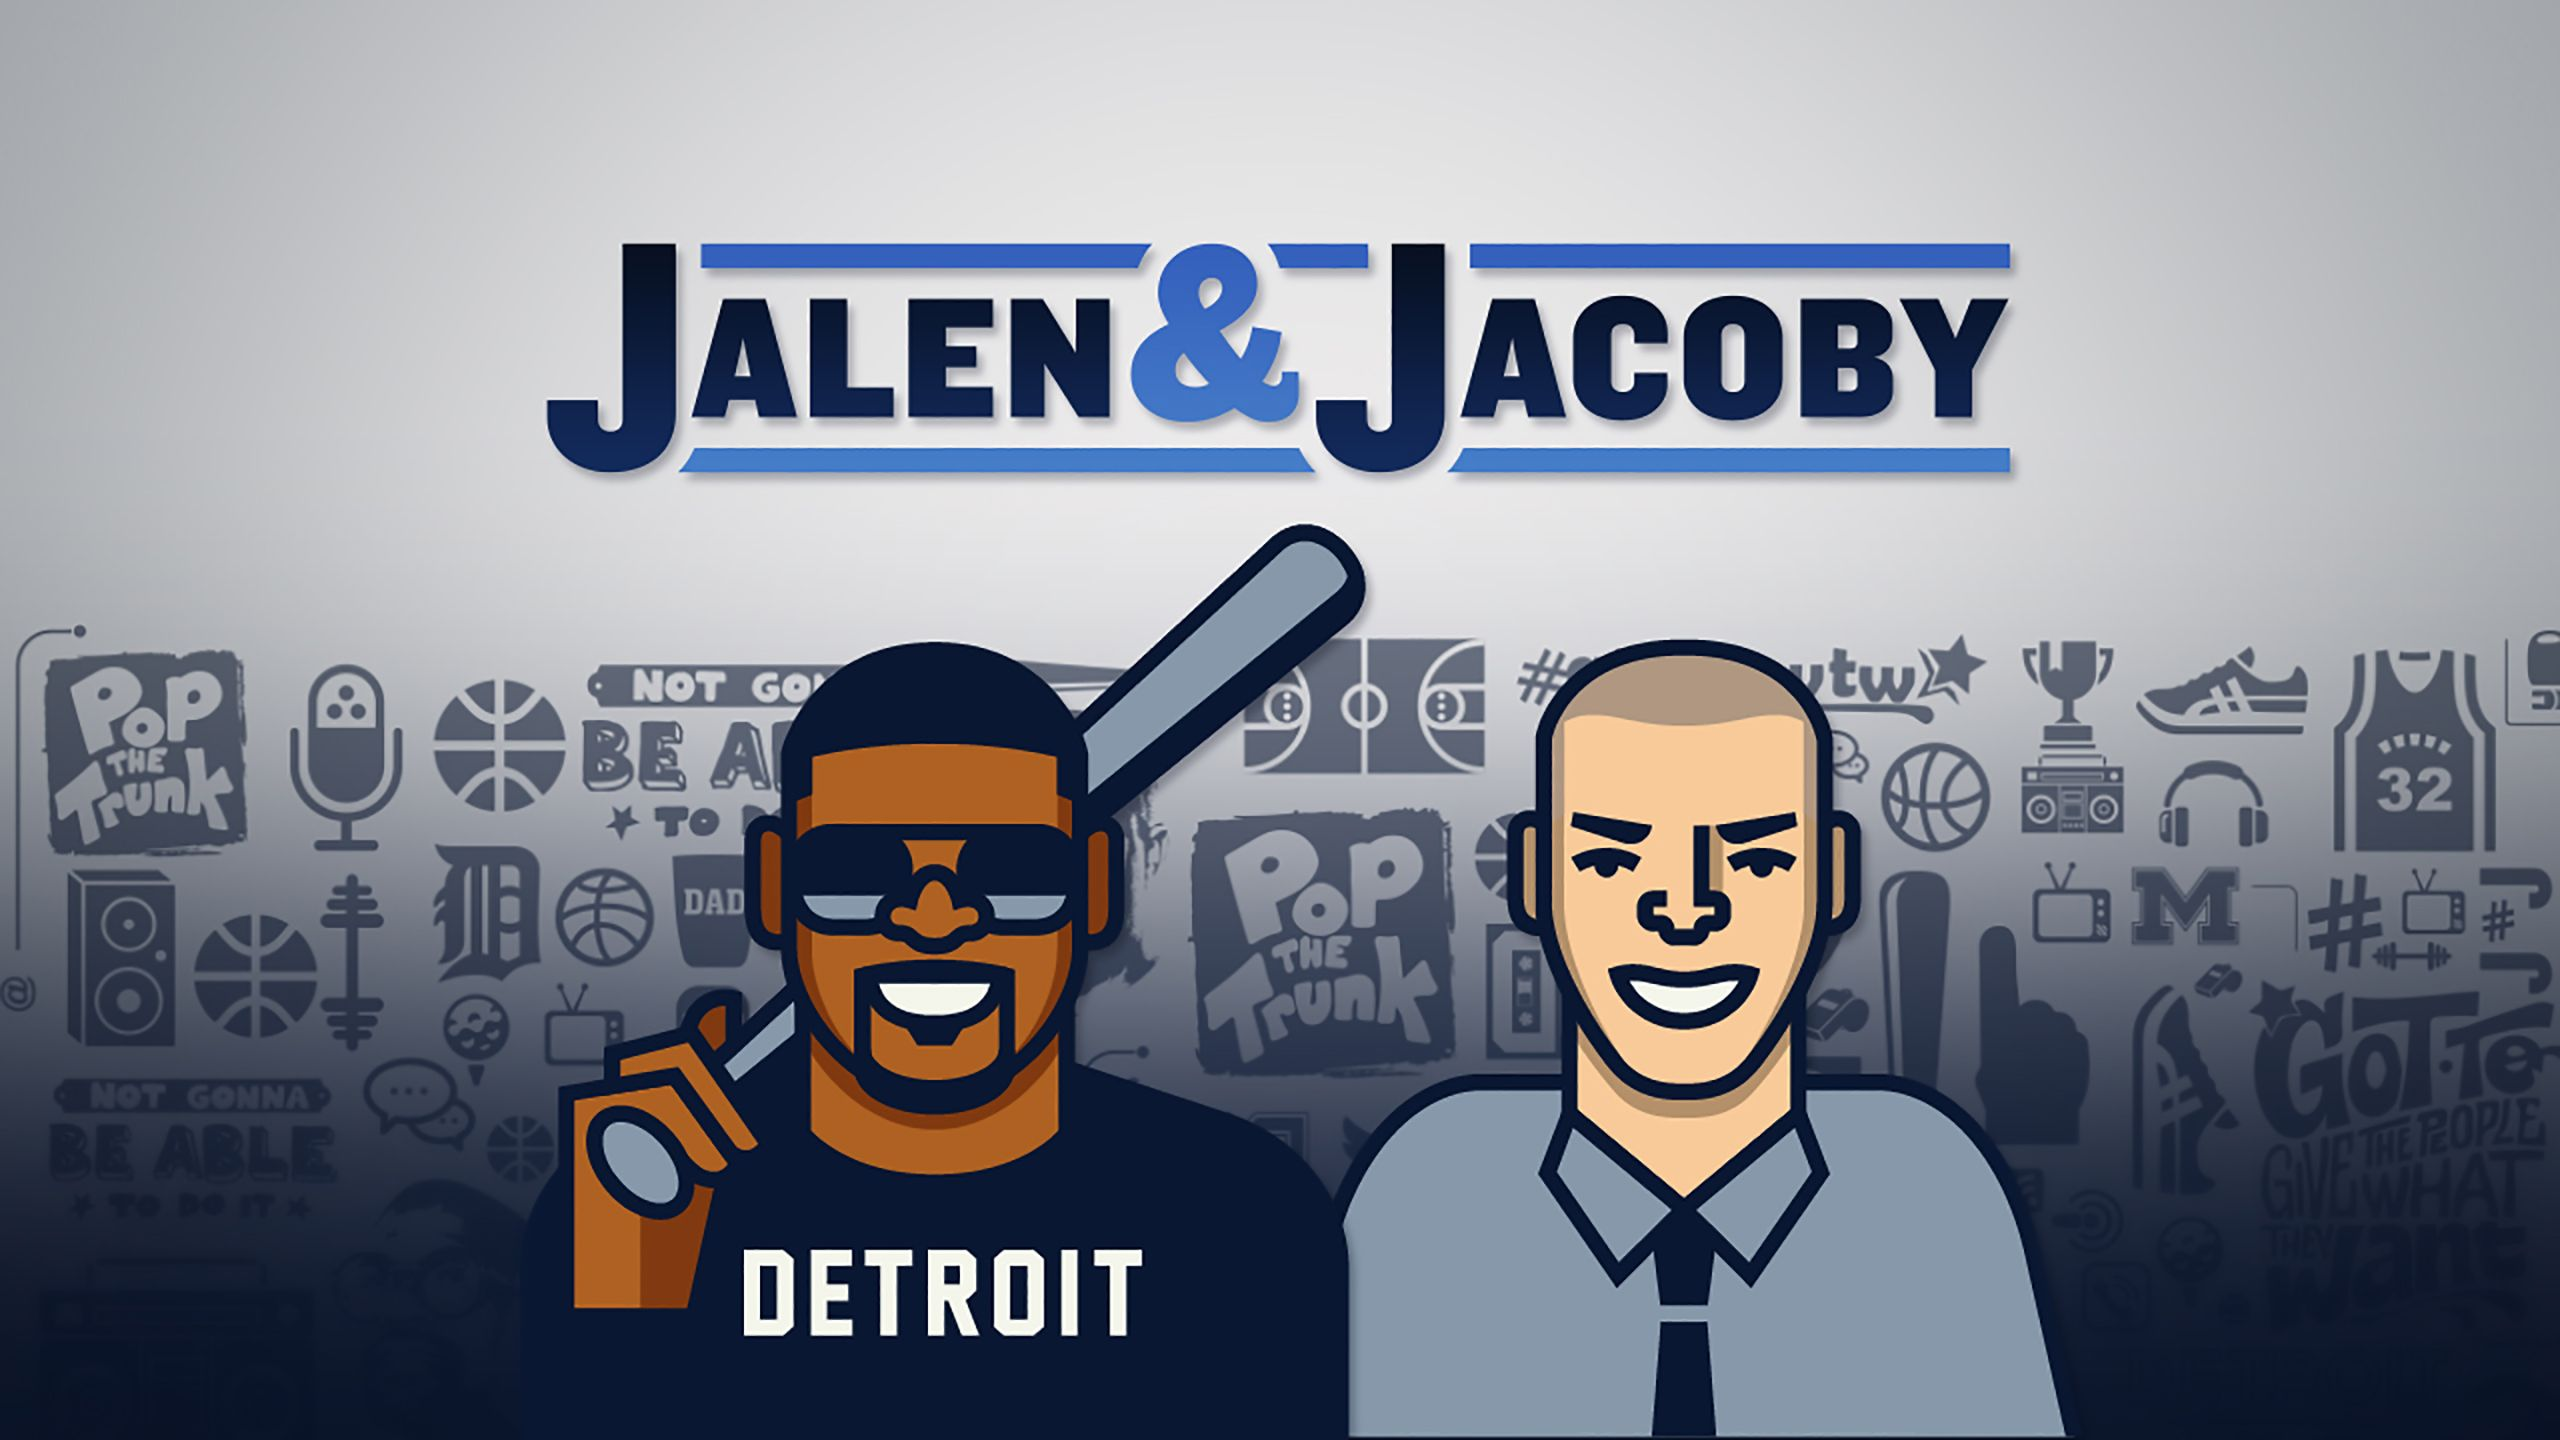 Wed, 5/23 - Jalen & Jacoby